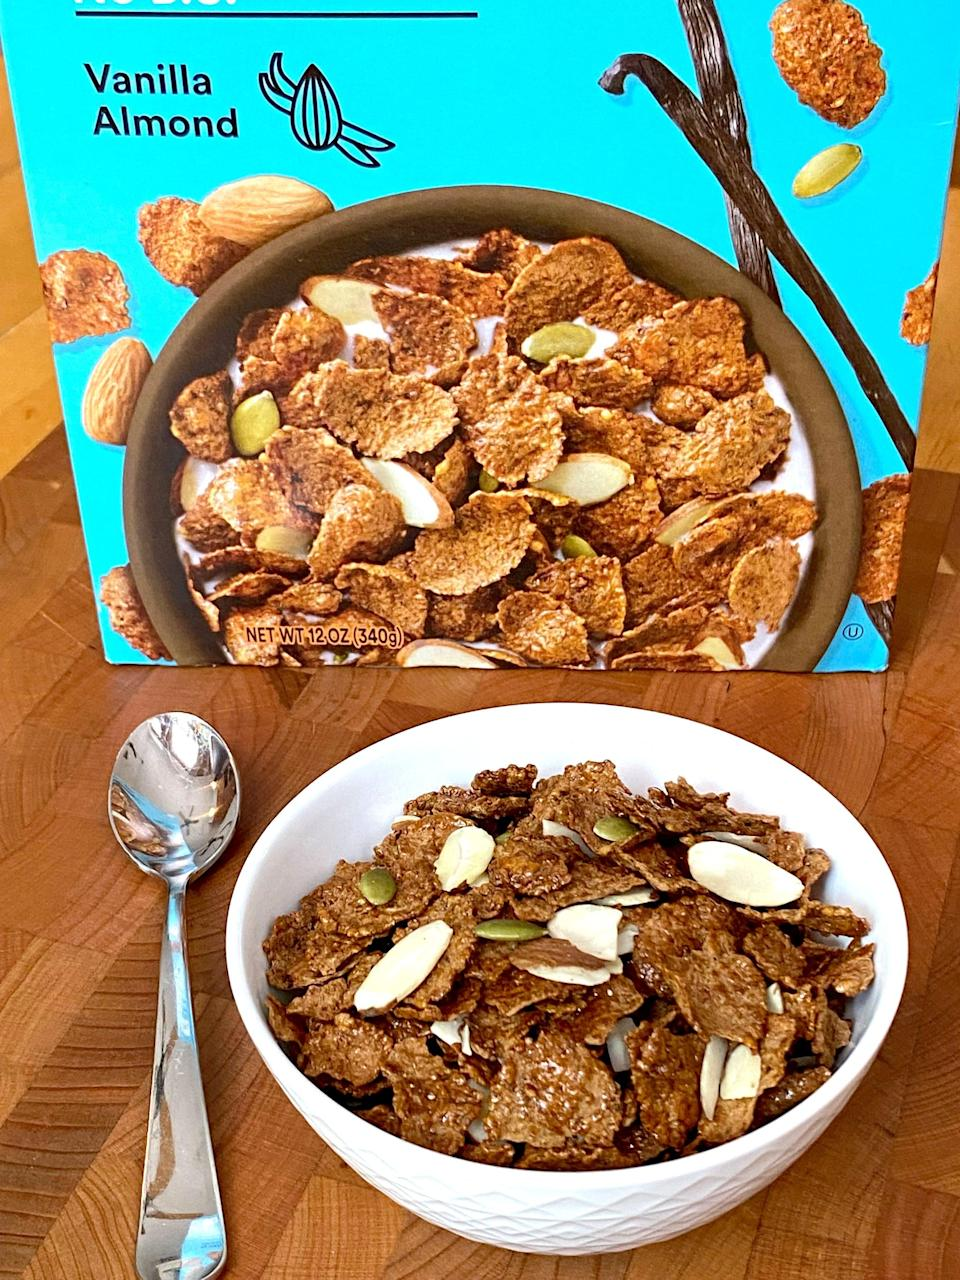 """<p>This Vanilla Almond RX Cereal reminded me of <a href=""""http://cereals.generalmills.com/products/golden-grahams/"""" class=""""link rapid-noclick-resp"""" rel=""""nofollow noopener"""" target=""""_blank"""" data-ylk=""""slk:Golden Grahams"""">Golden Grahams</a>. Based on the cereal's name I was expecting a strong vanilla flavor but I didn't detect that. I could, however, absolutely taste the honey on these satisfyingly crunchy flakes. I loved how there were plenty of sliced almonds and pumpkin seeds mixed throughout my bowl. </p> <p>This flavor was my favorite to snack on dry, but when paired with soy milk, I liked the Chocolate Almond flavor more. Both cereal flavors are delicious, and I'd recommend them 100 percent if you're a cereal fan. You can find these on the RX website for $24 for three boxes, and it will roll out at select retailers nationwide.</p>"""